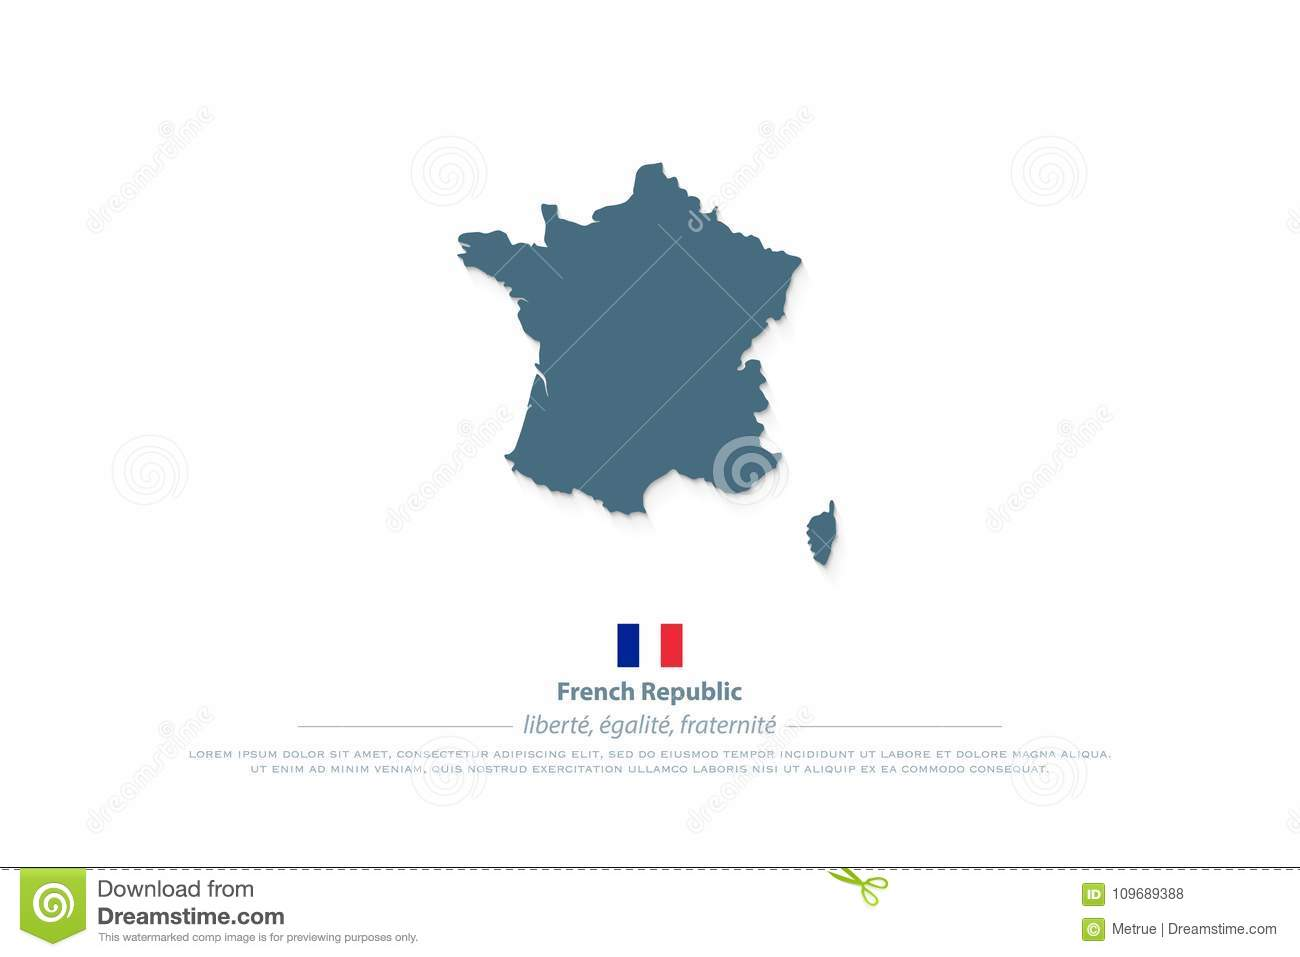 Map Of France Political.French Republic Map And Official Flag Icon France Political Map